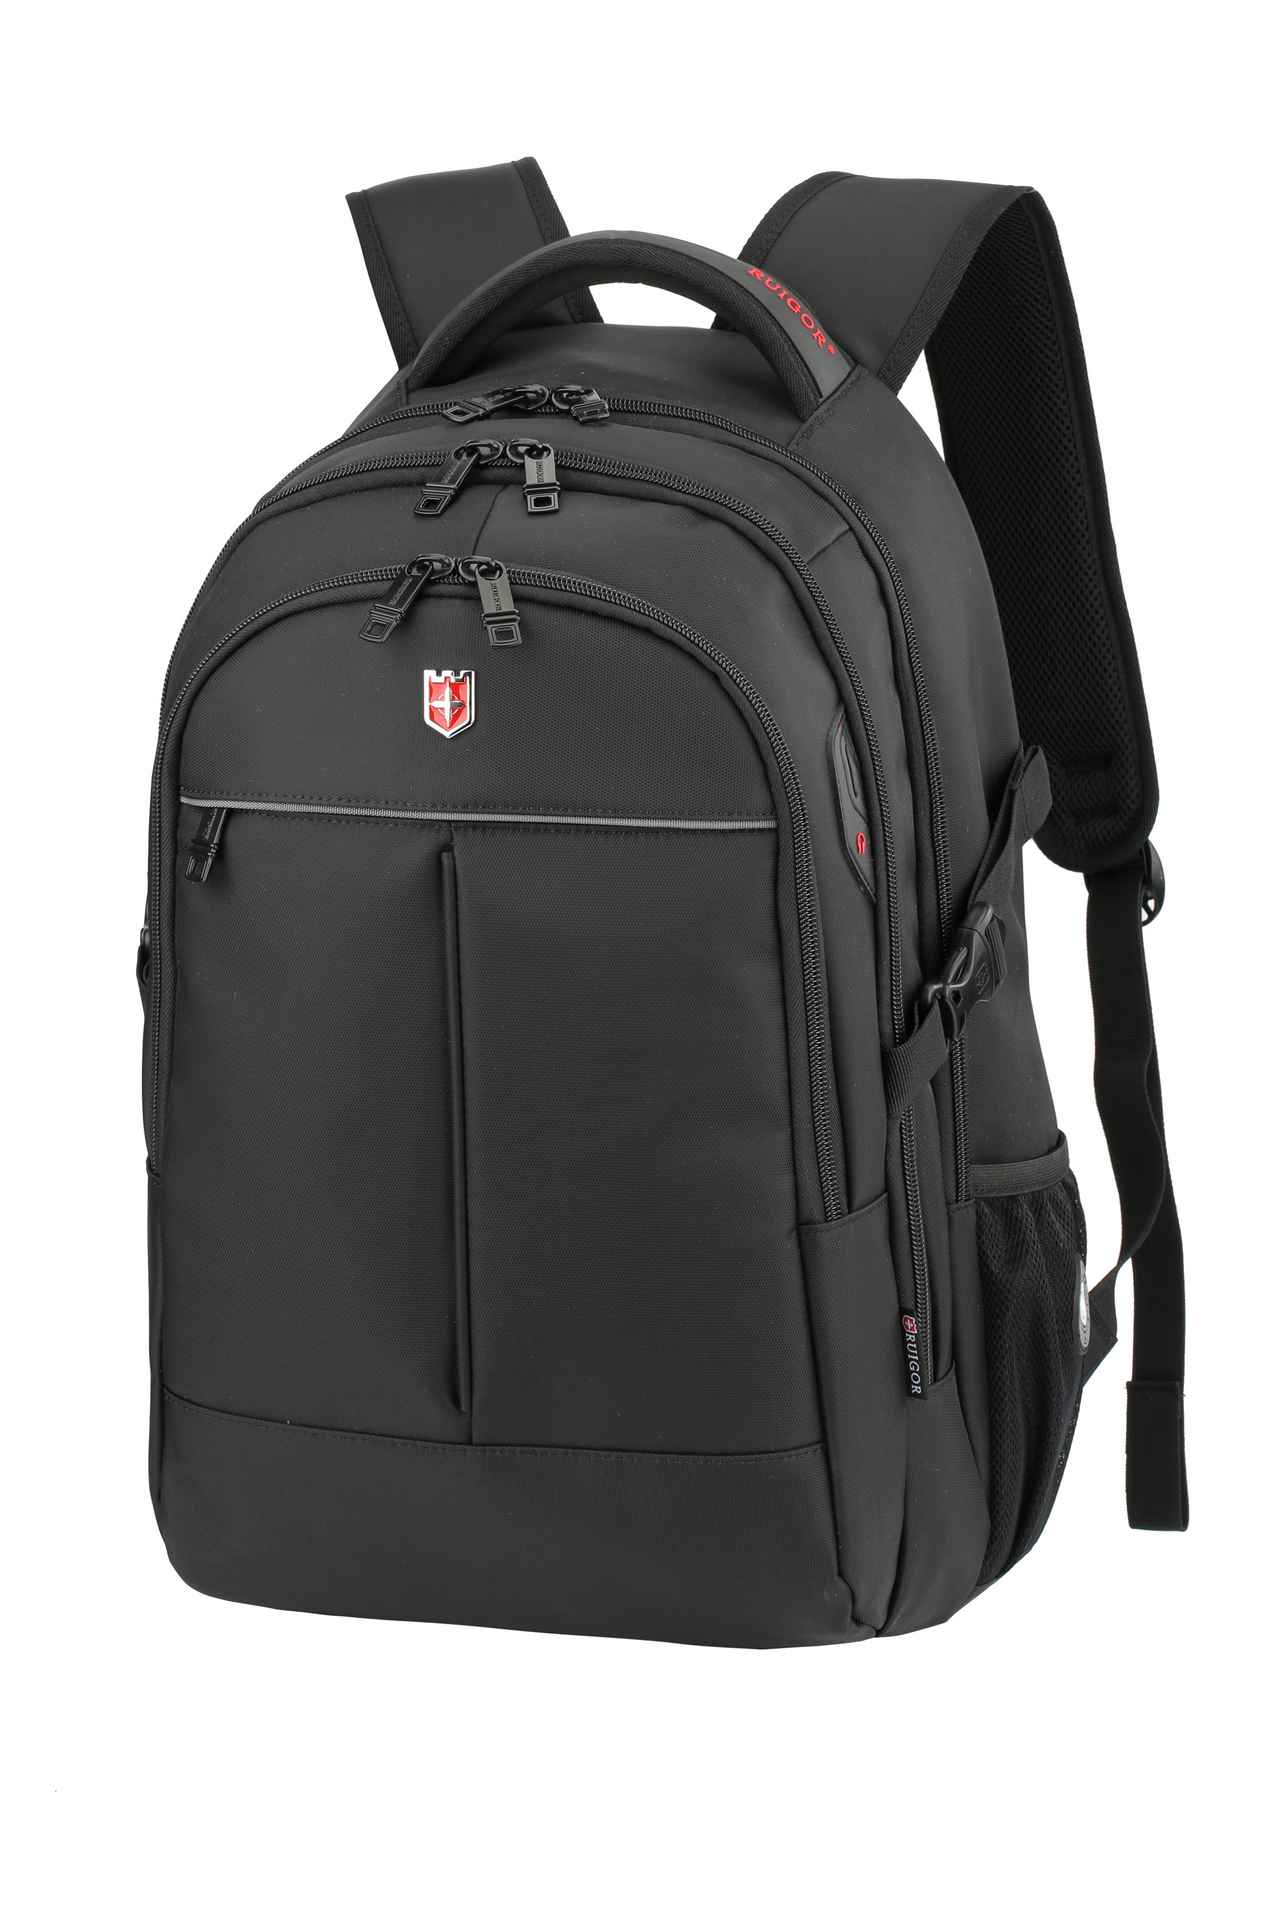 RUIGOR ICON 87 Laptop Backpack Black - Unique Style